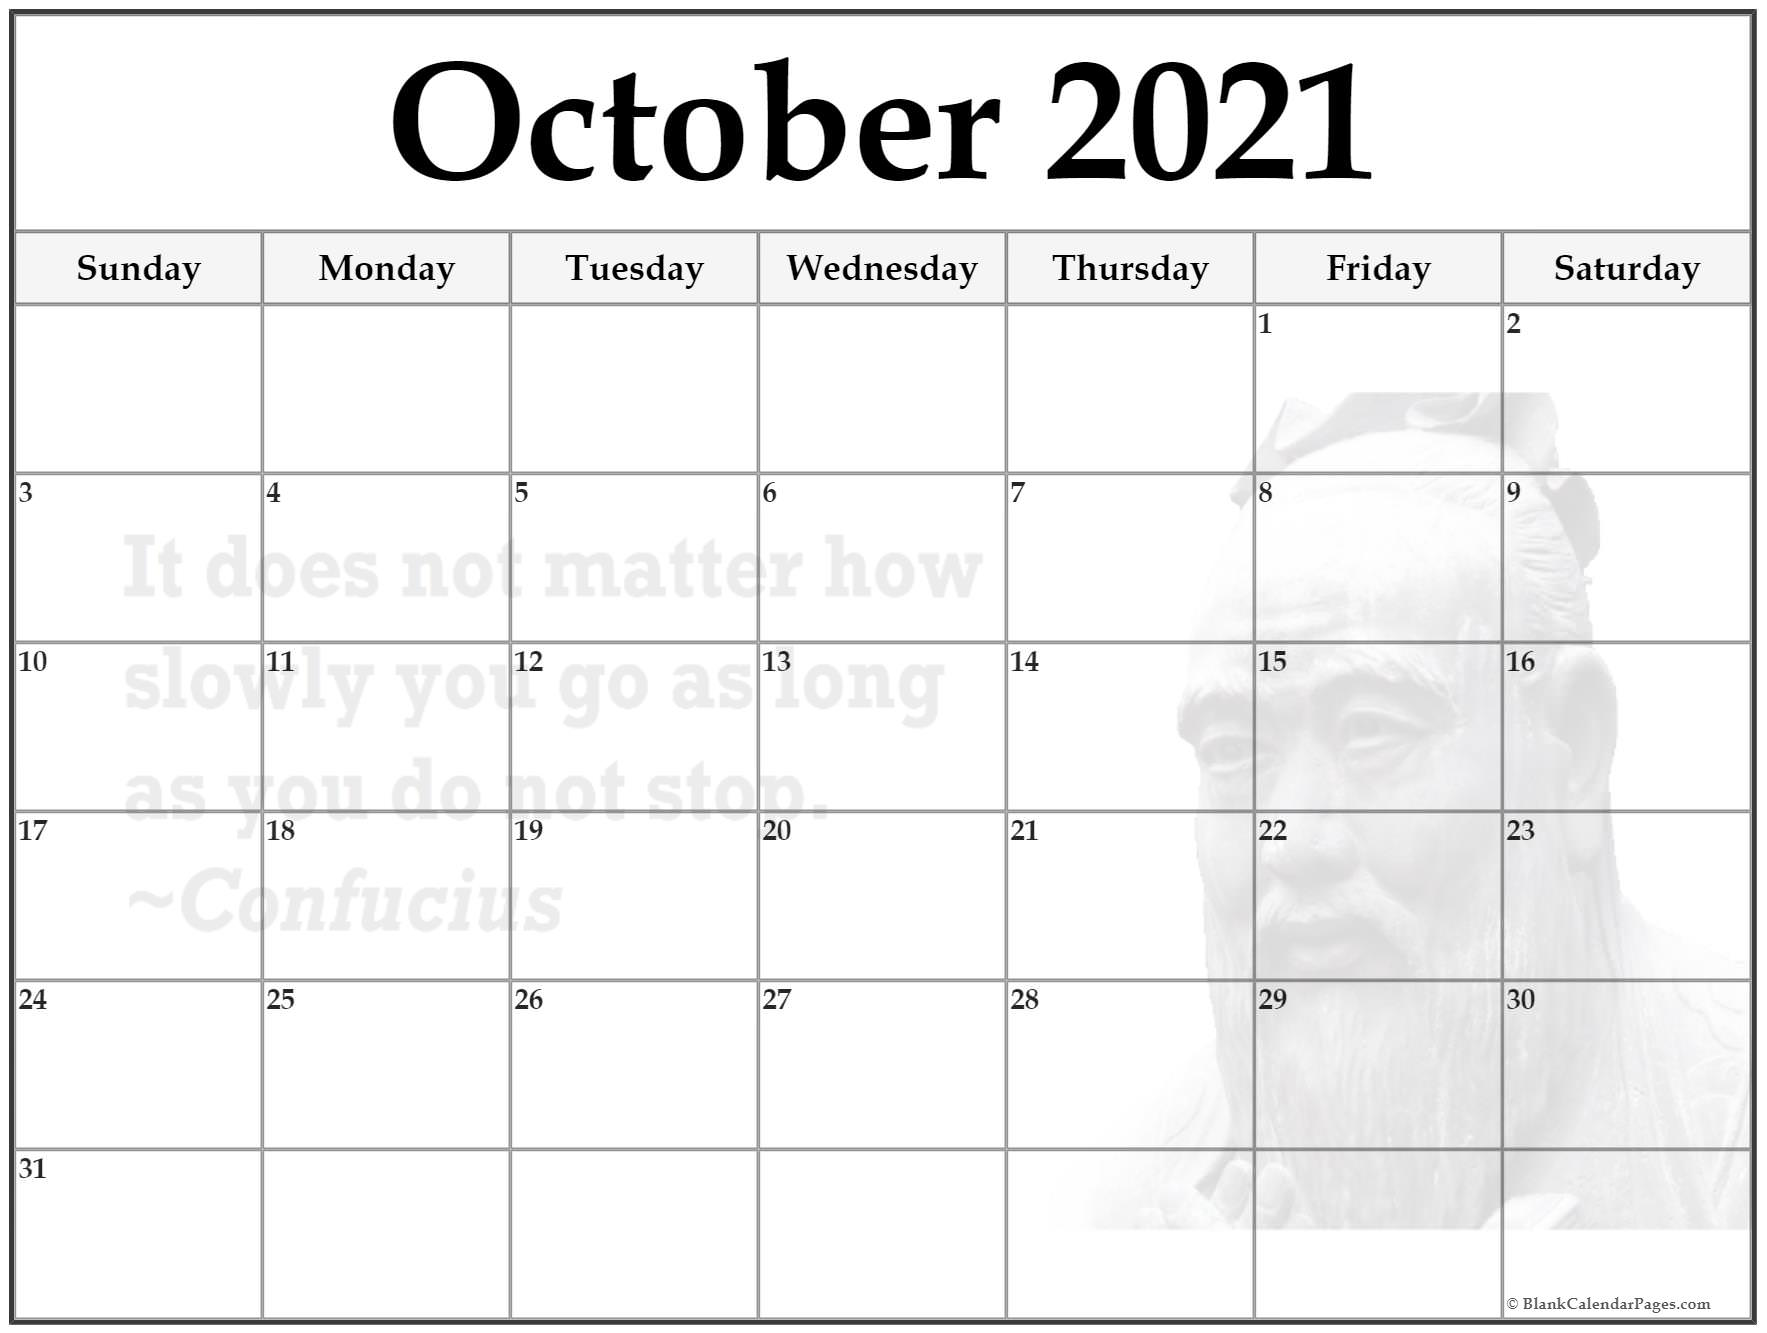 October 2020 quotes and sayings calendar. It does not matter how slowly you go as long as you don't stop ~Confucius